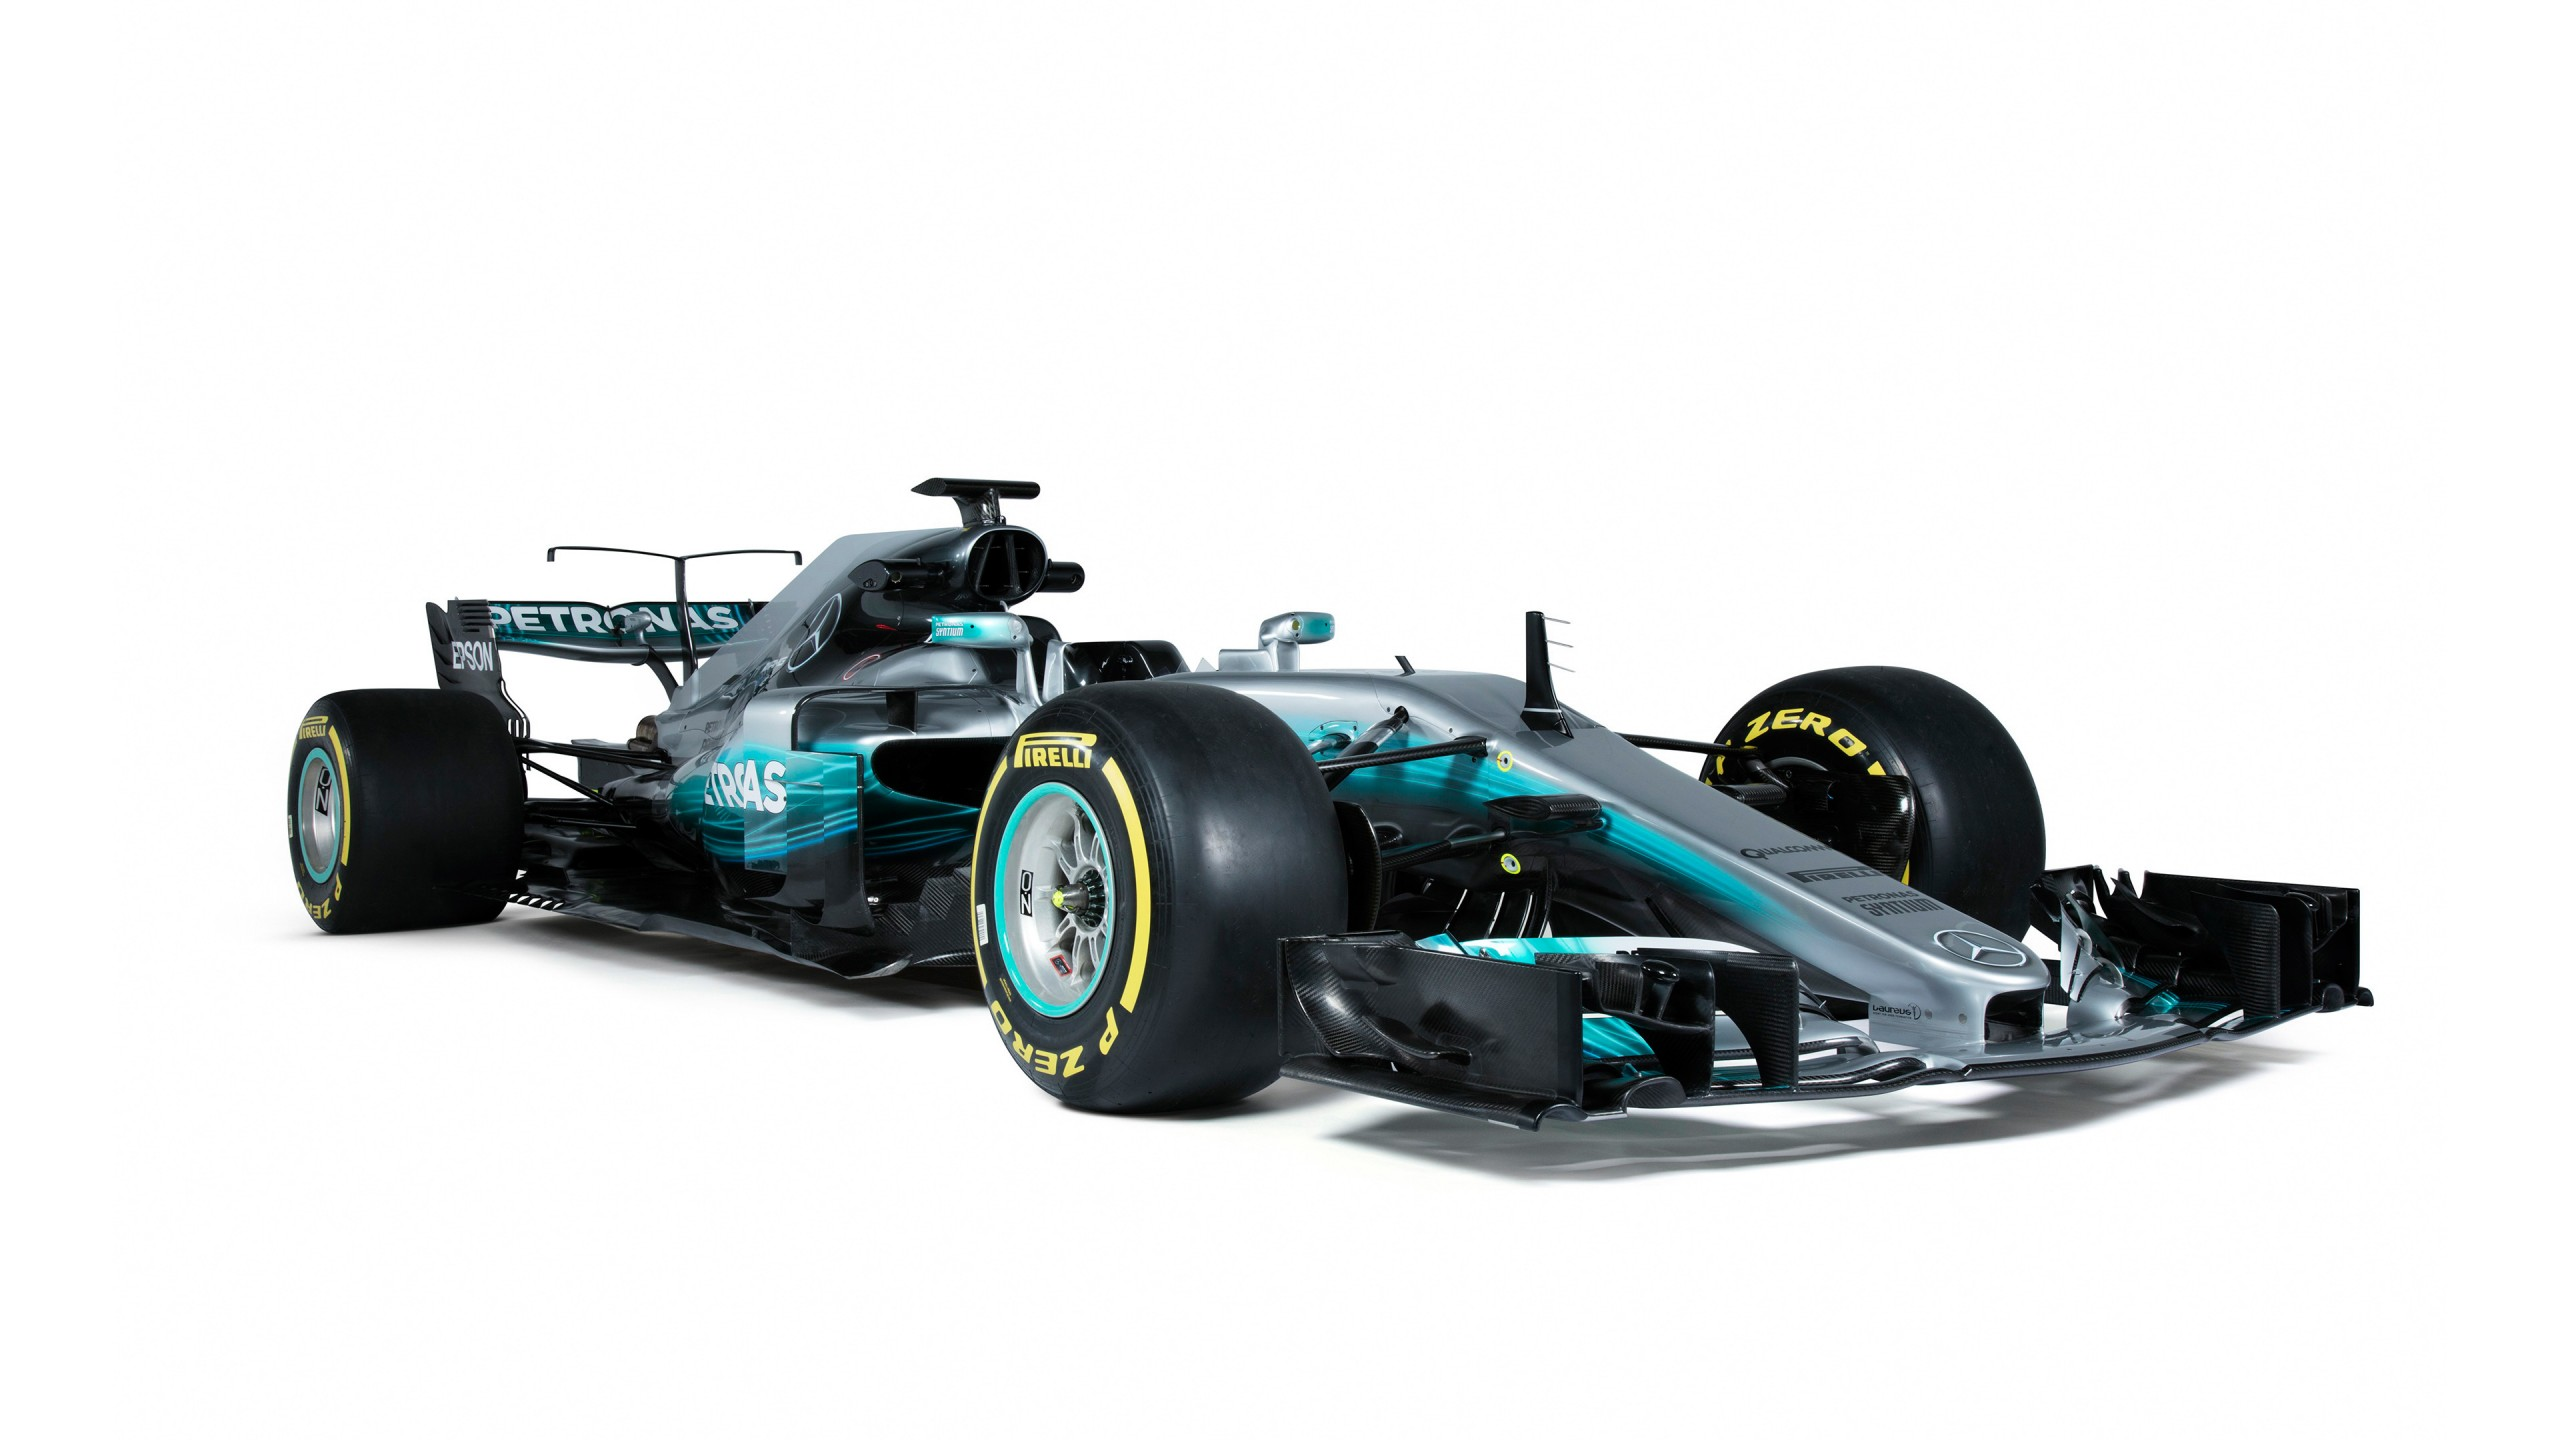 F1 cars wallpapers desktop